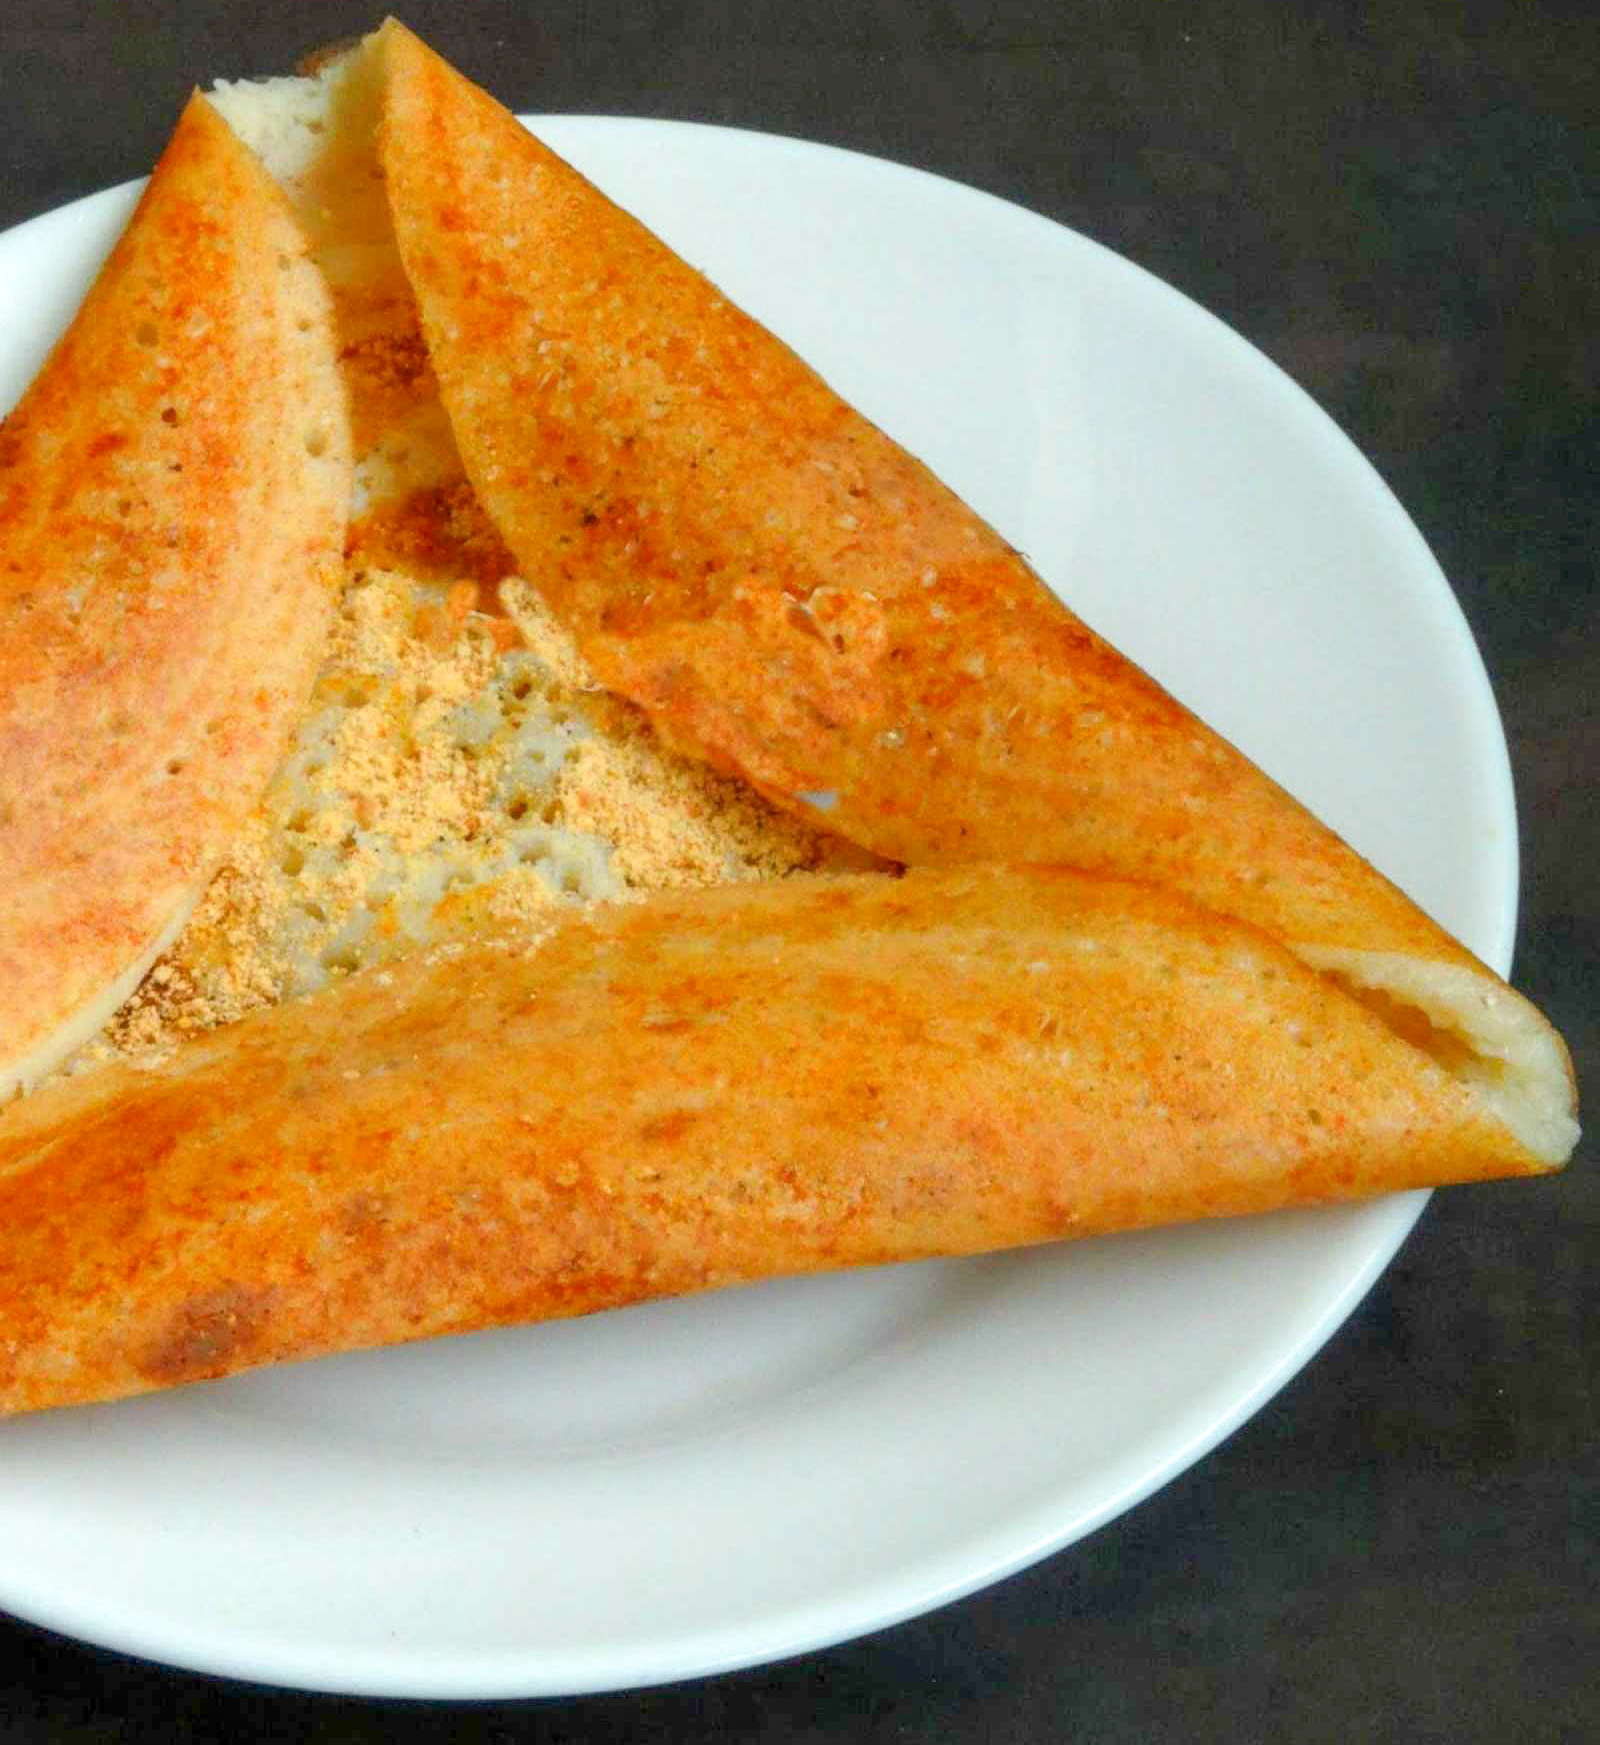 Foxtail millet podi dosa recipe by archanas kitchen foxtail millet podi dosa recipe forumfinder Image collections